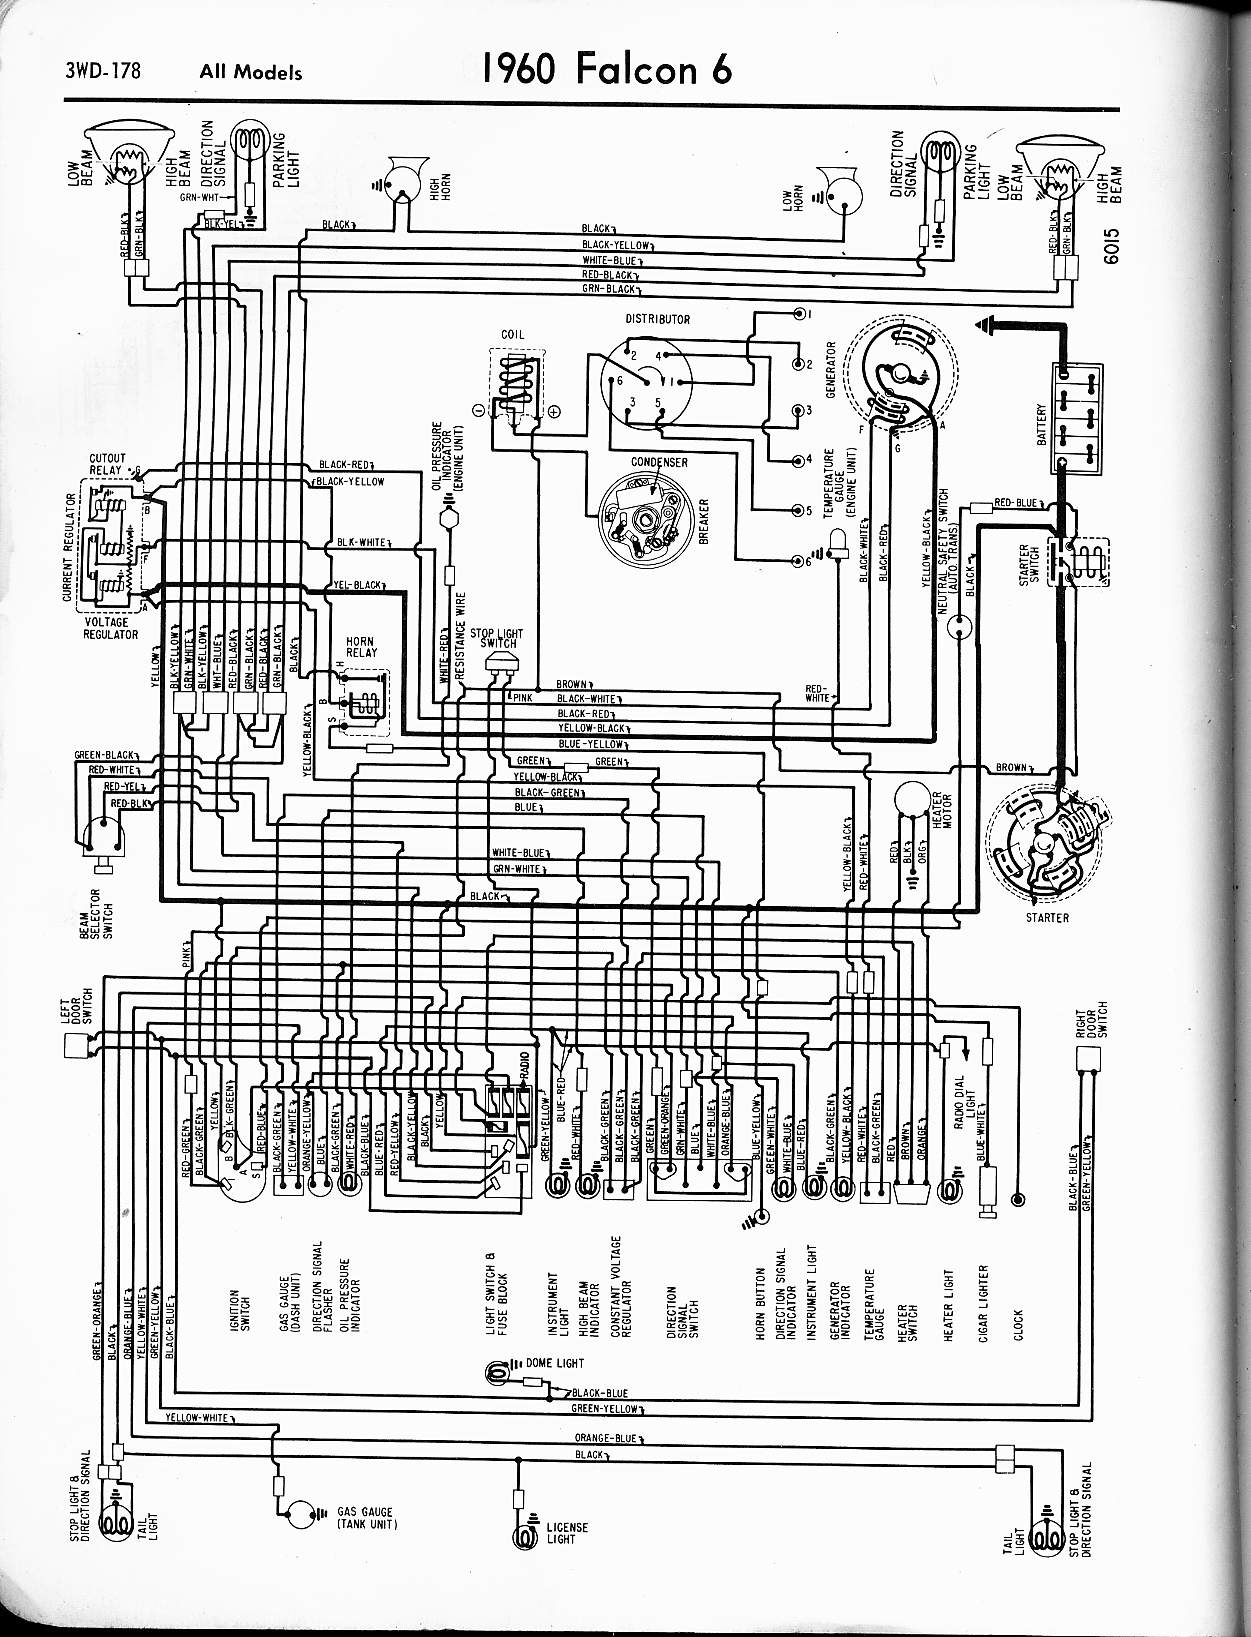 hight resolution of 1965 ford falcon wiring diagram wiring diagram img 1965 falcon wiring harness